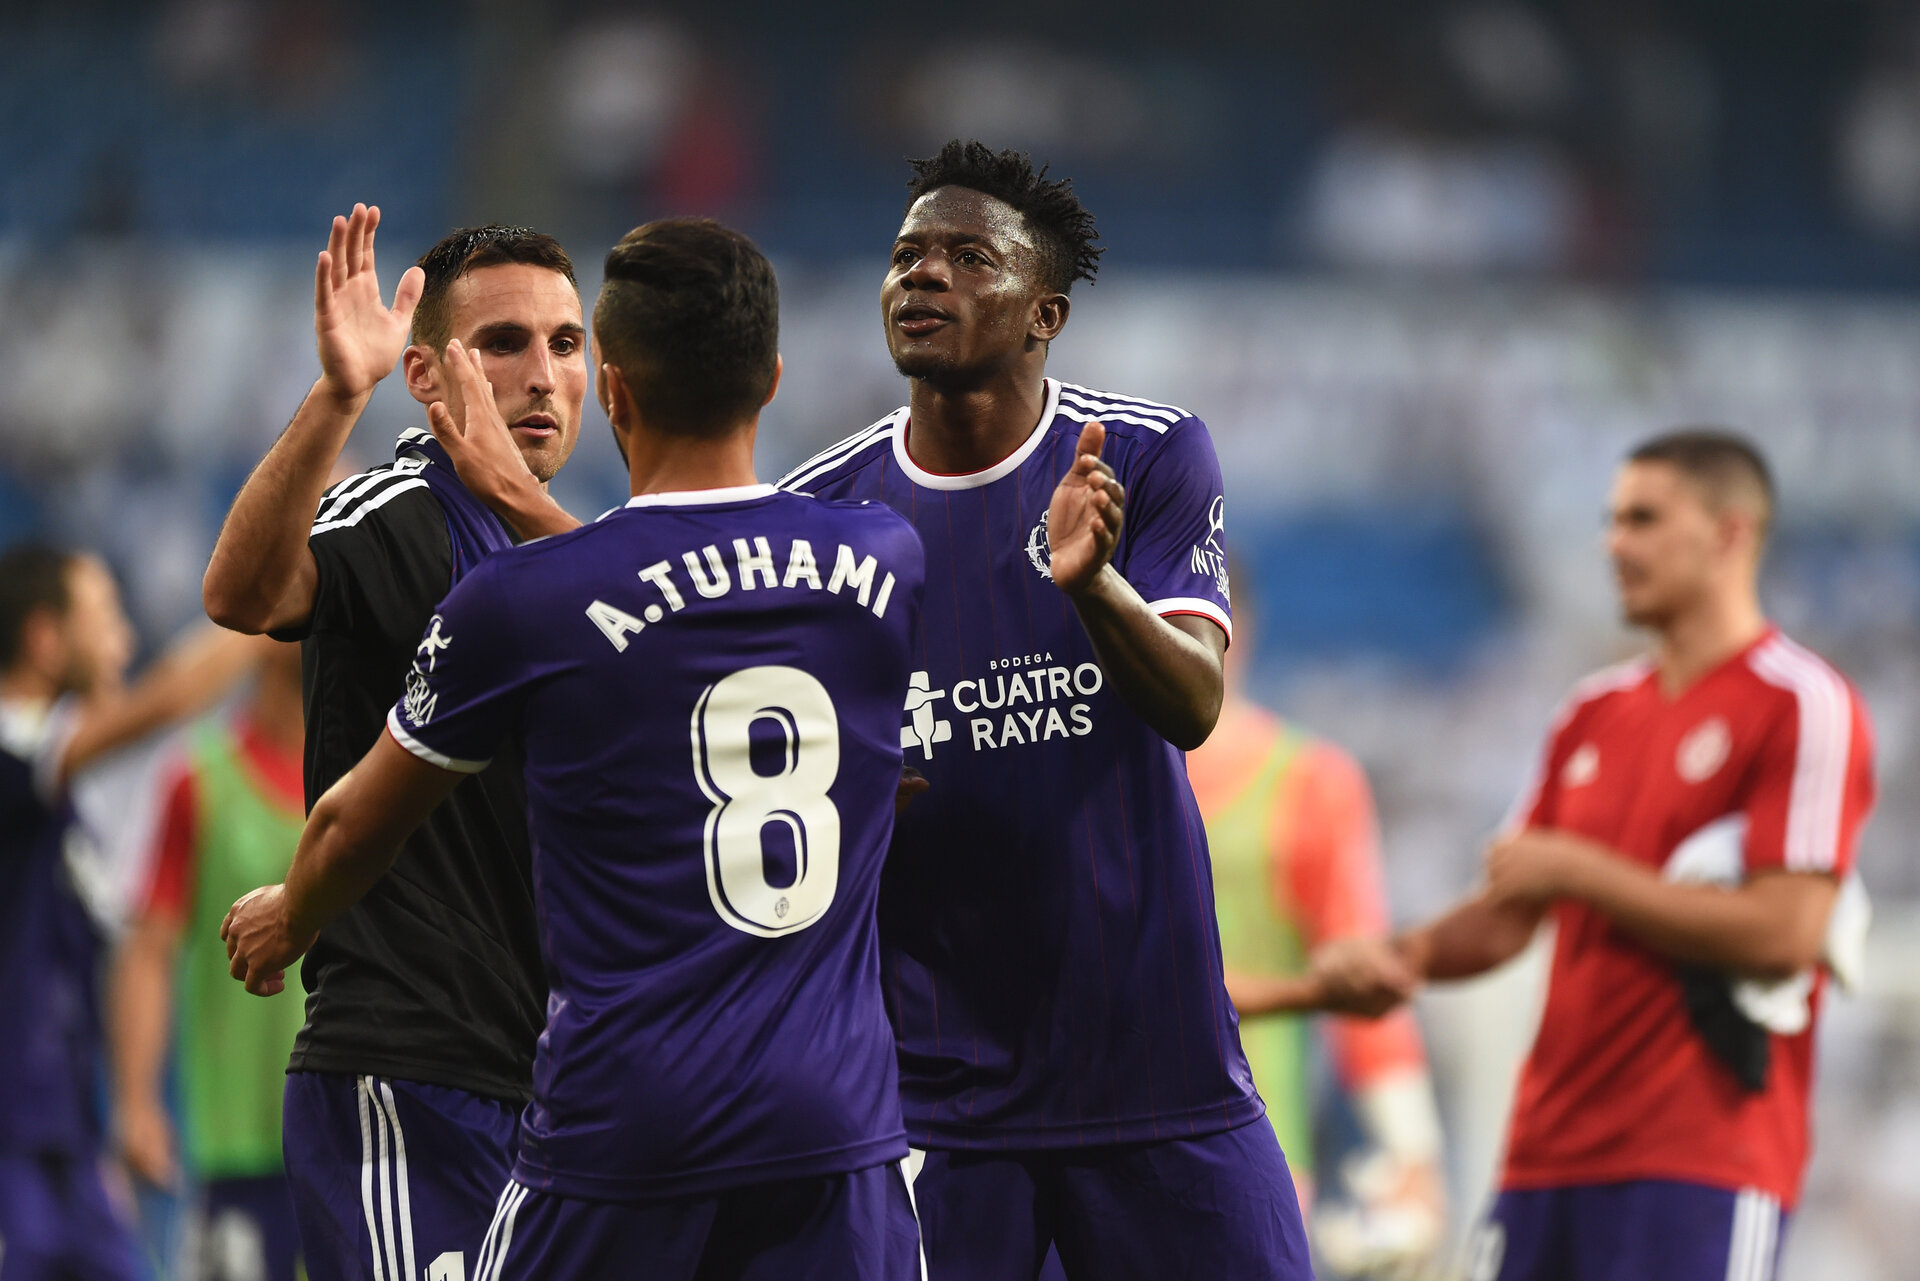 MADRID, SPAIN - AUGUST 24: Mohammed Salisu of Real Valladolid and Anuar of Real Valladolid celebrate after drawing during the La Liga match between Real Madrid CF and Real Valladolid CF at Estadio Santiago Bernabeu on August 24, 2019 in Madrid, Spain. (Photo by Denis Doyle/Getty Images)